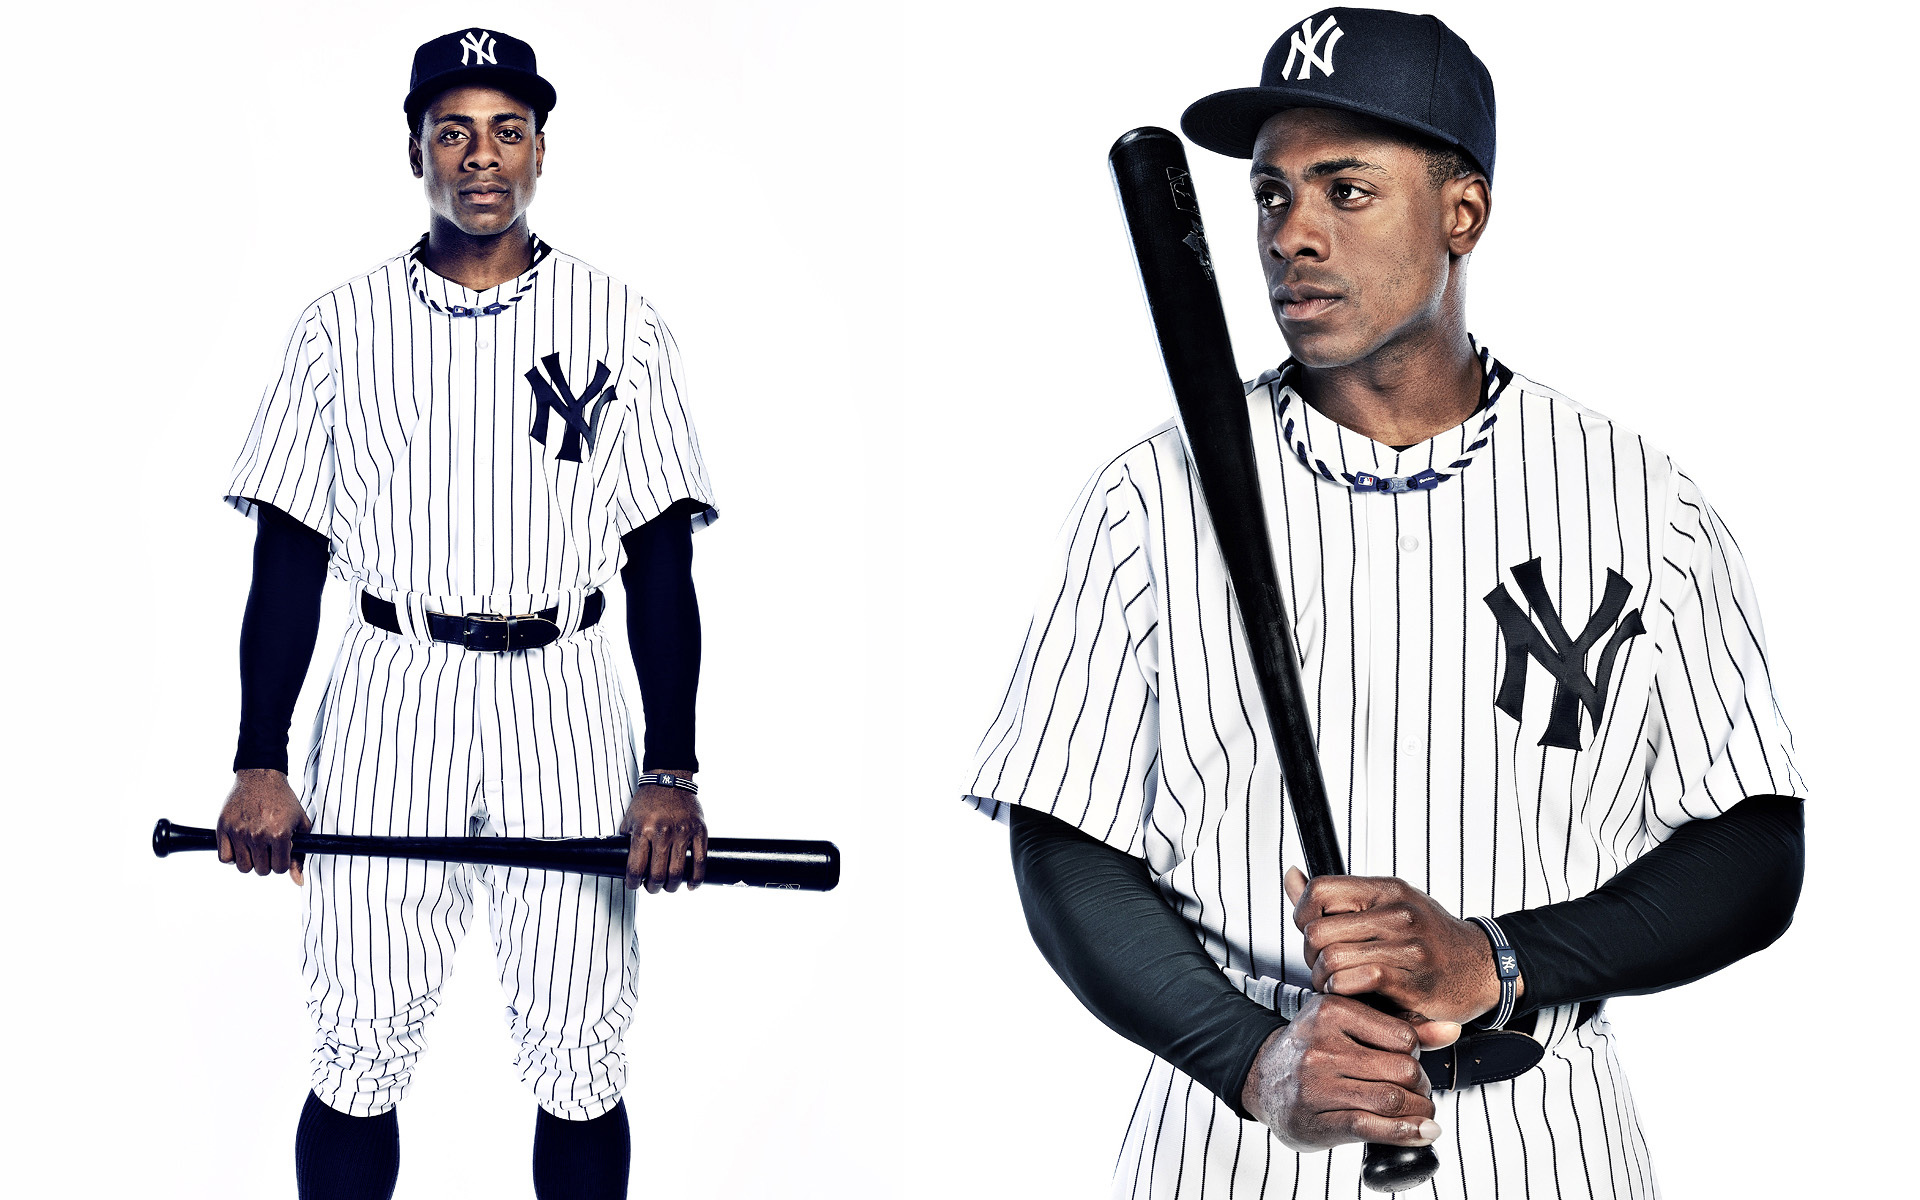 Curtis Granderson photographed by Blair Bunting